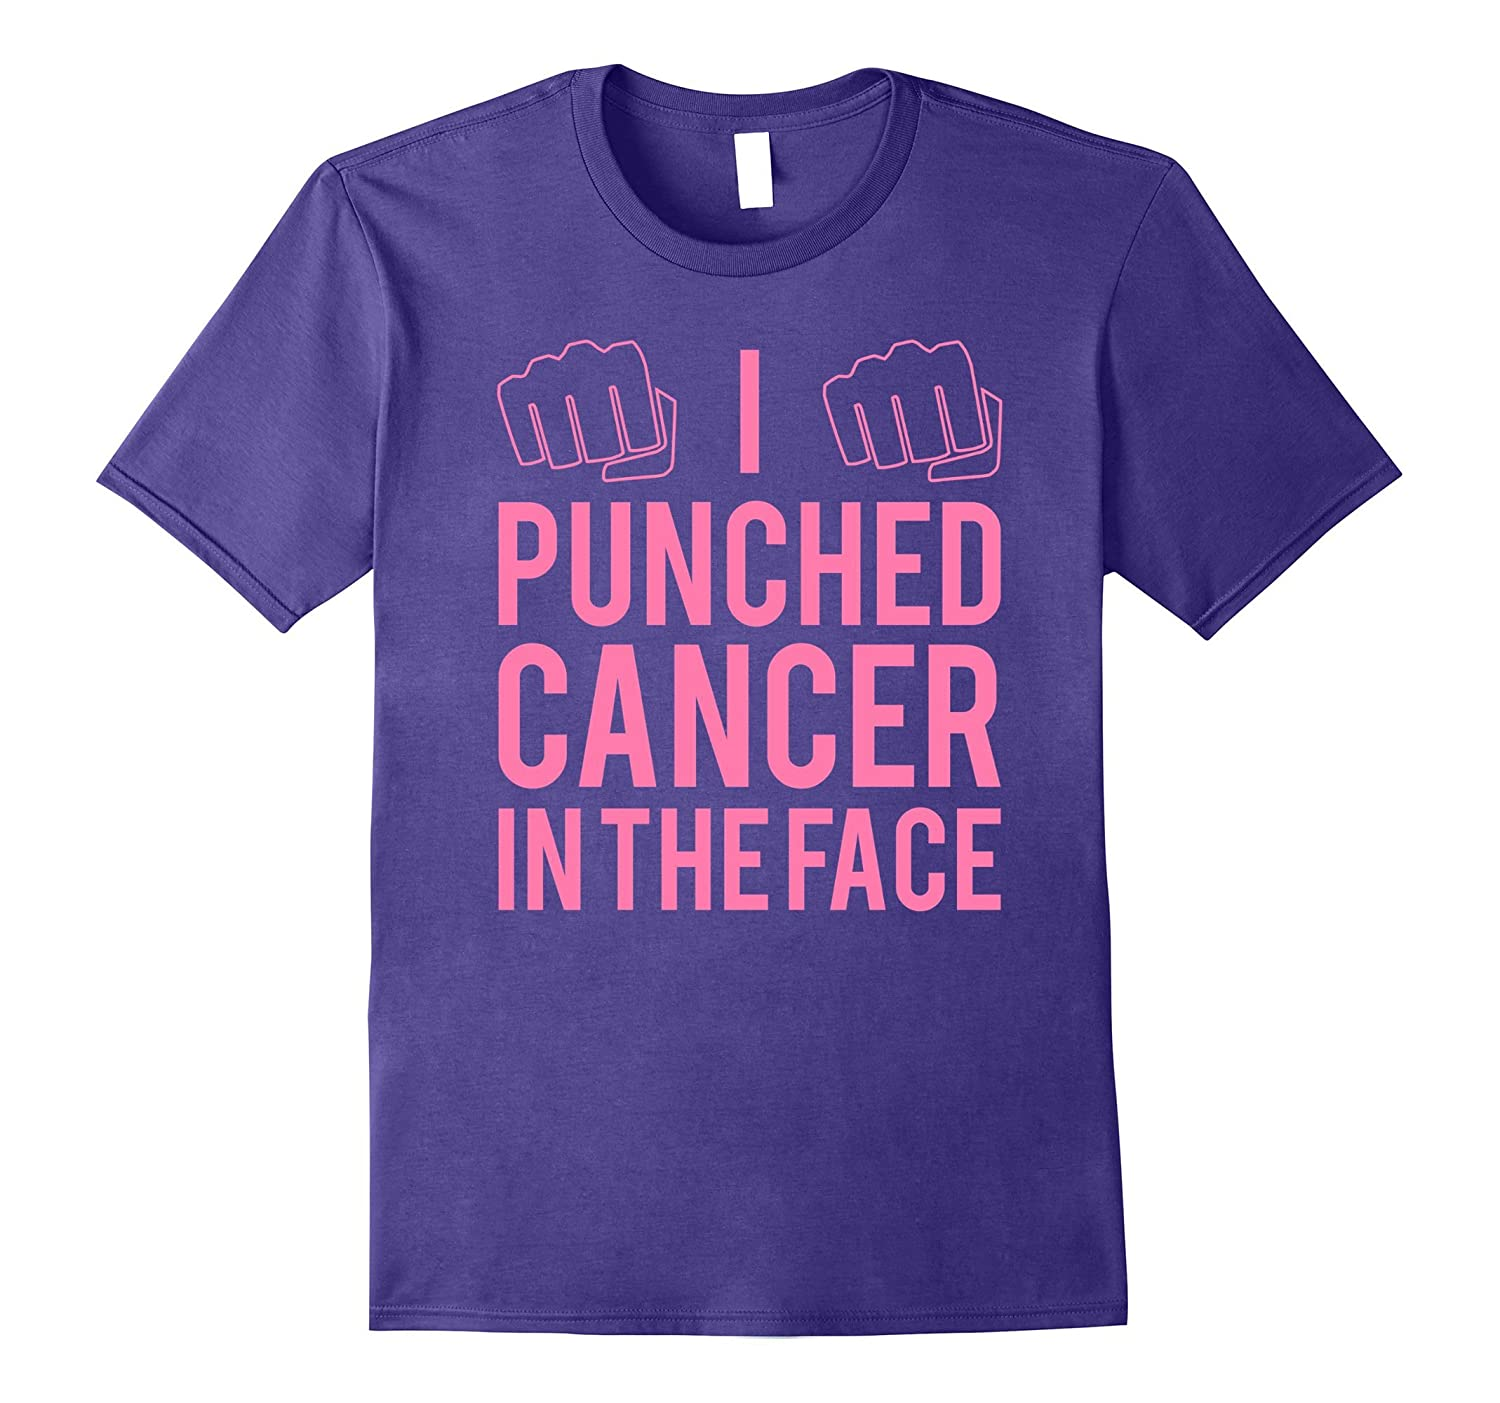 I Punched Cancer In The Face - Funny Cancer Fighting T-Shirt-Art